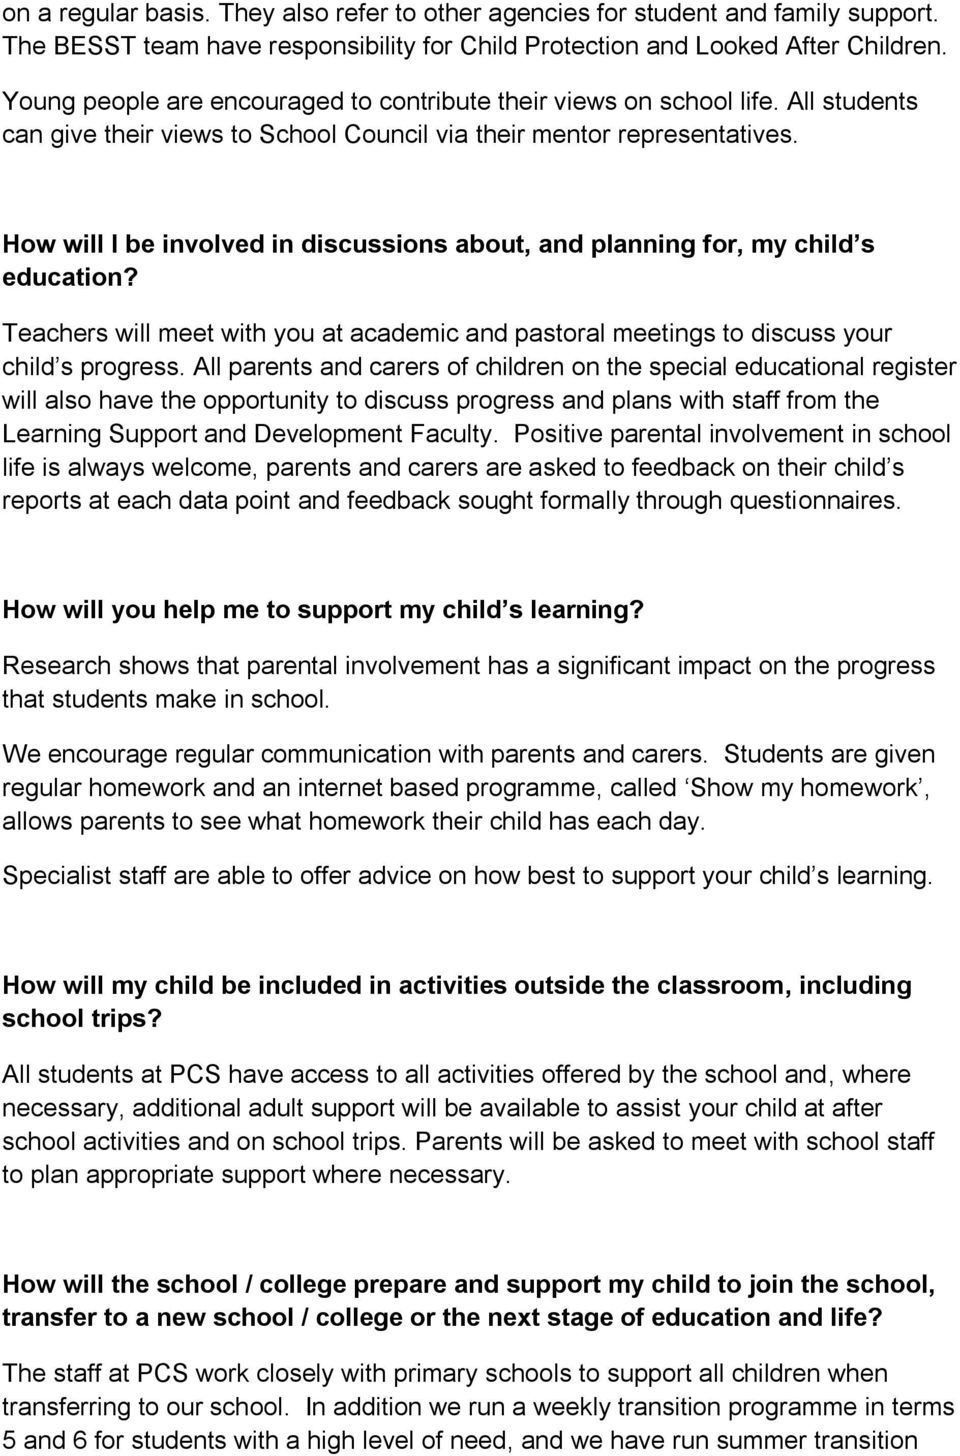 How will I be involved in discussions about, and planning for, my child s education? Teachers will meet with you at academic and pastoral meetings to discuss your child s progress.